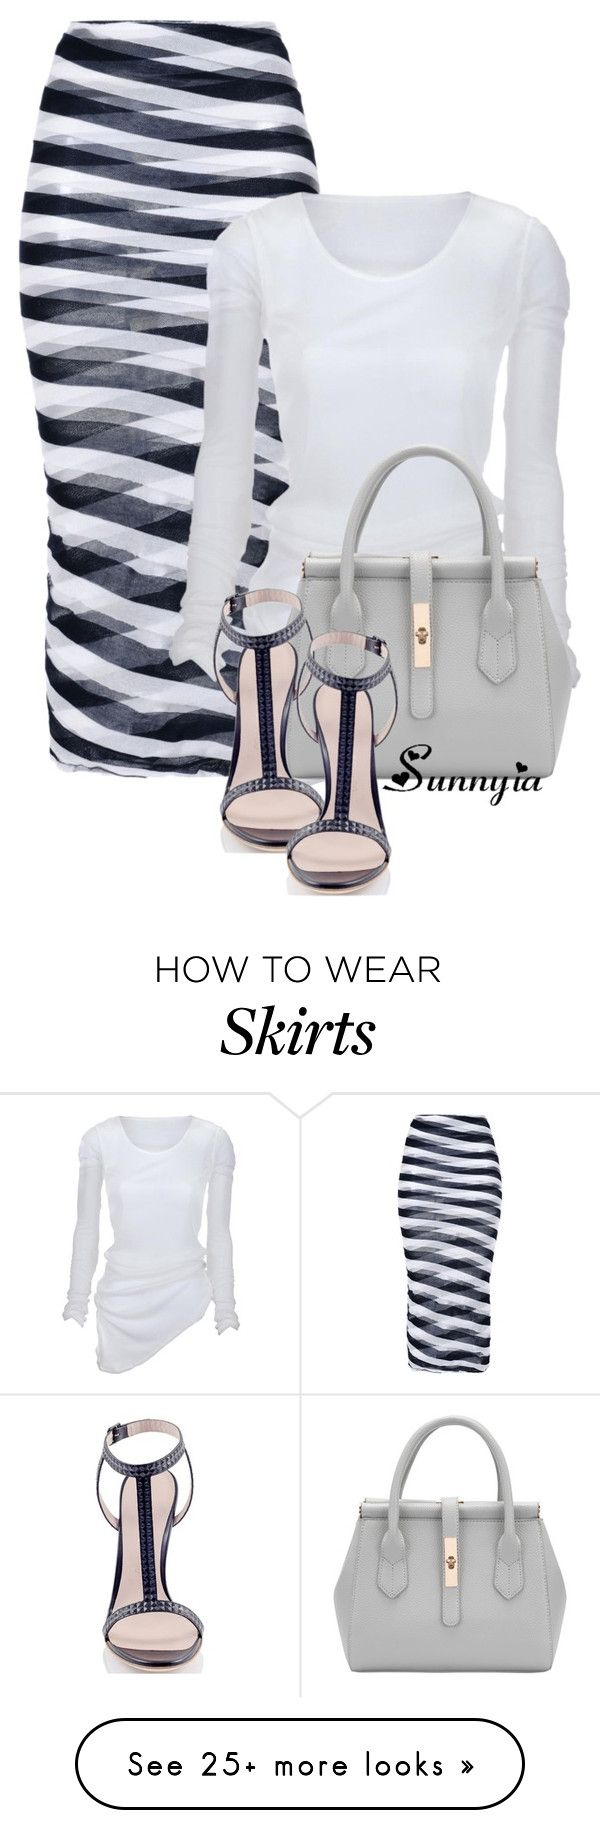 """""""Unique Skirt"""" by sunnyia on Polyvore featuring STELLA McCARTNEY and Konstantina Tzovolou"""